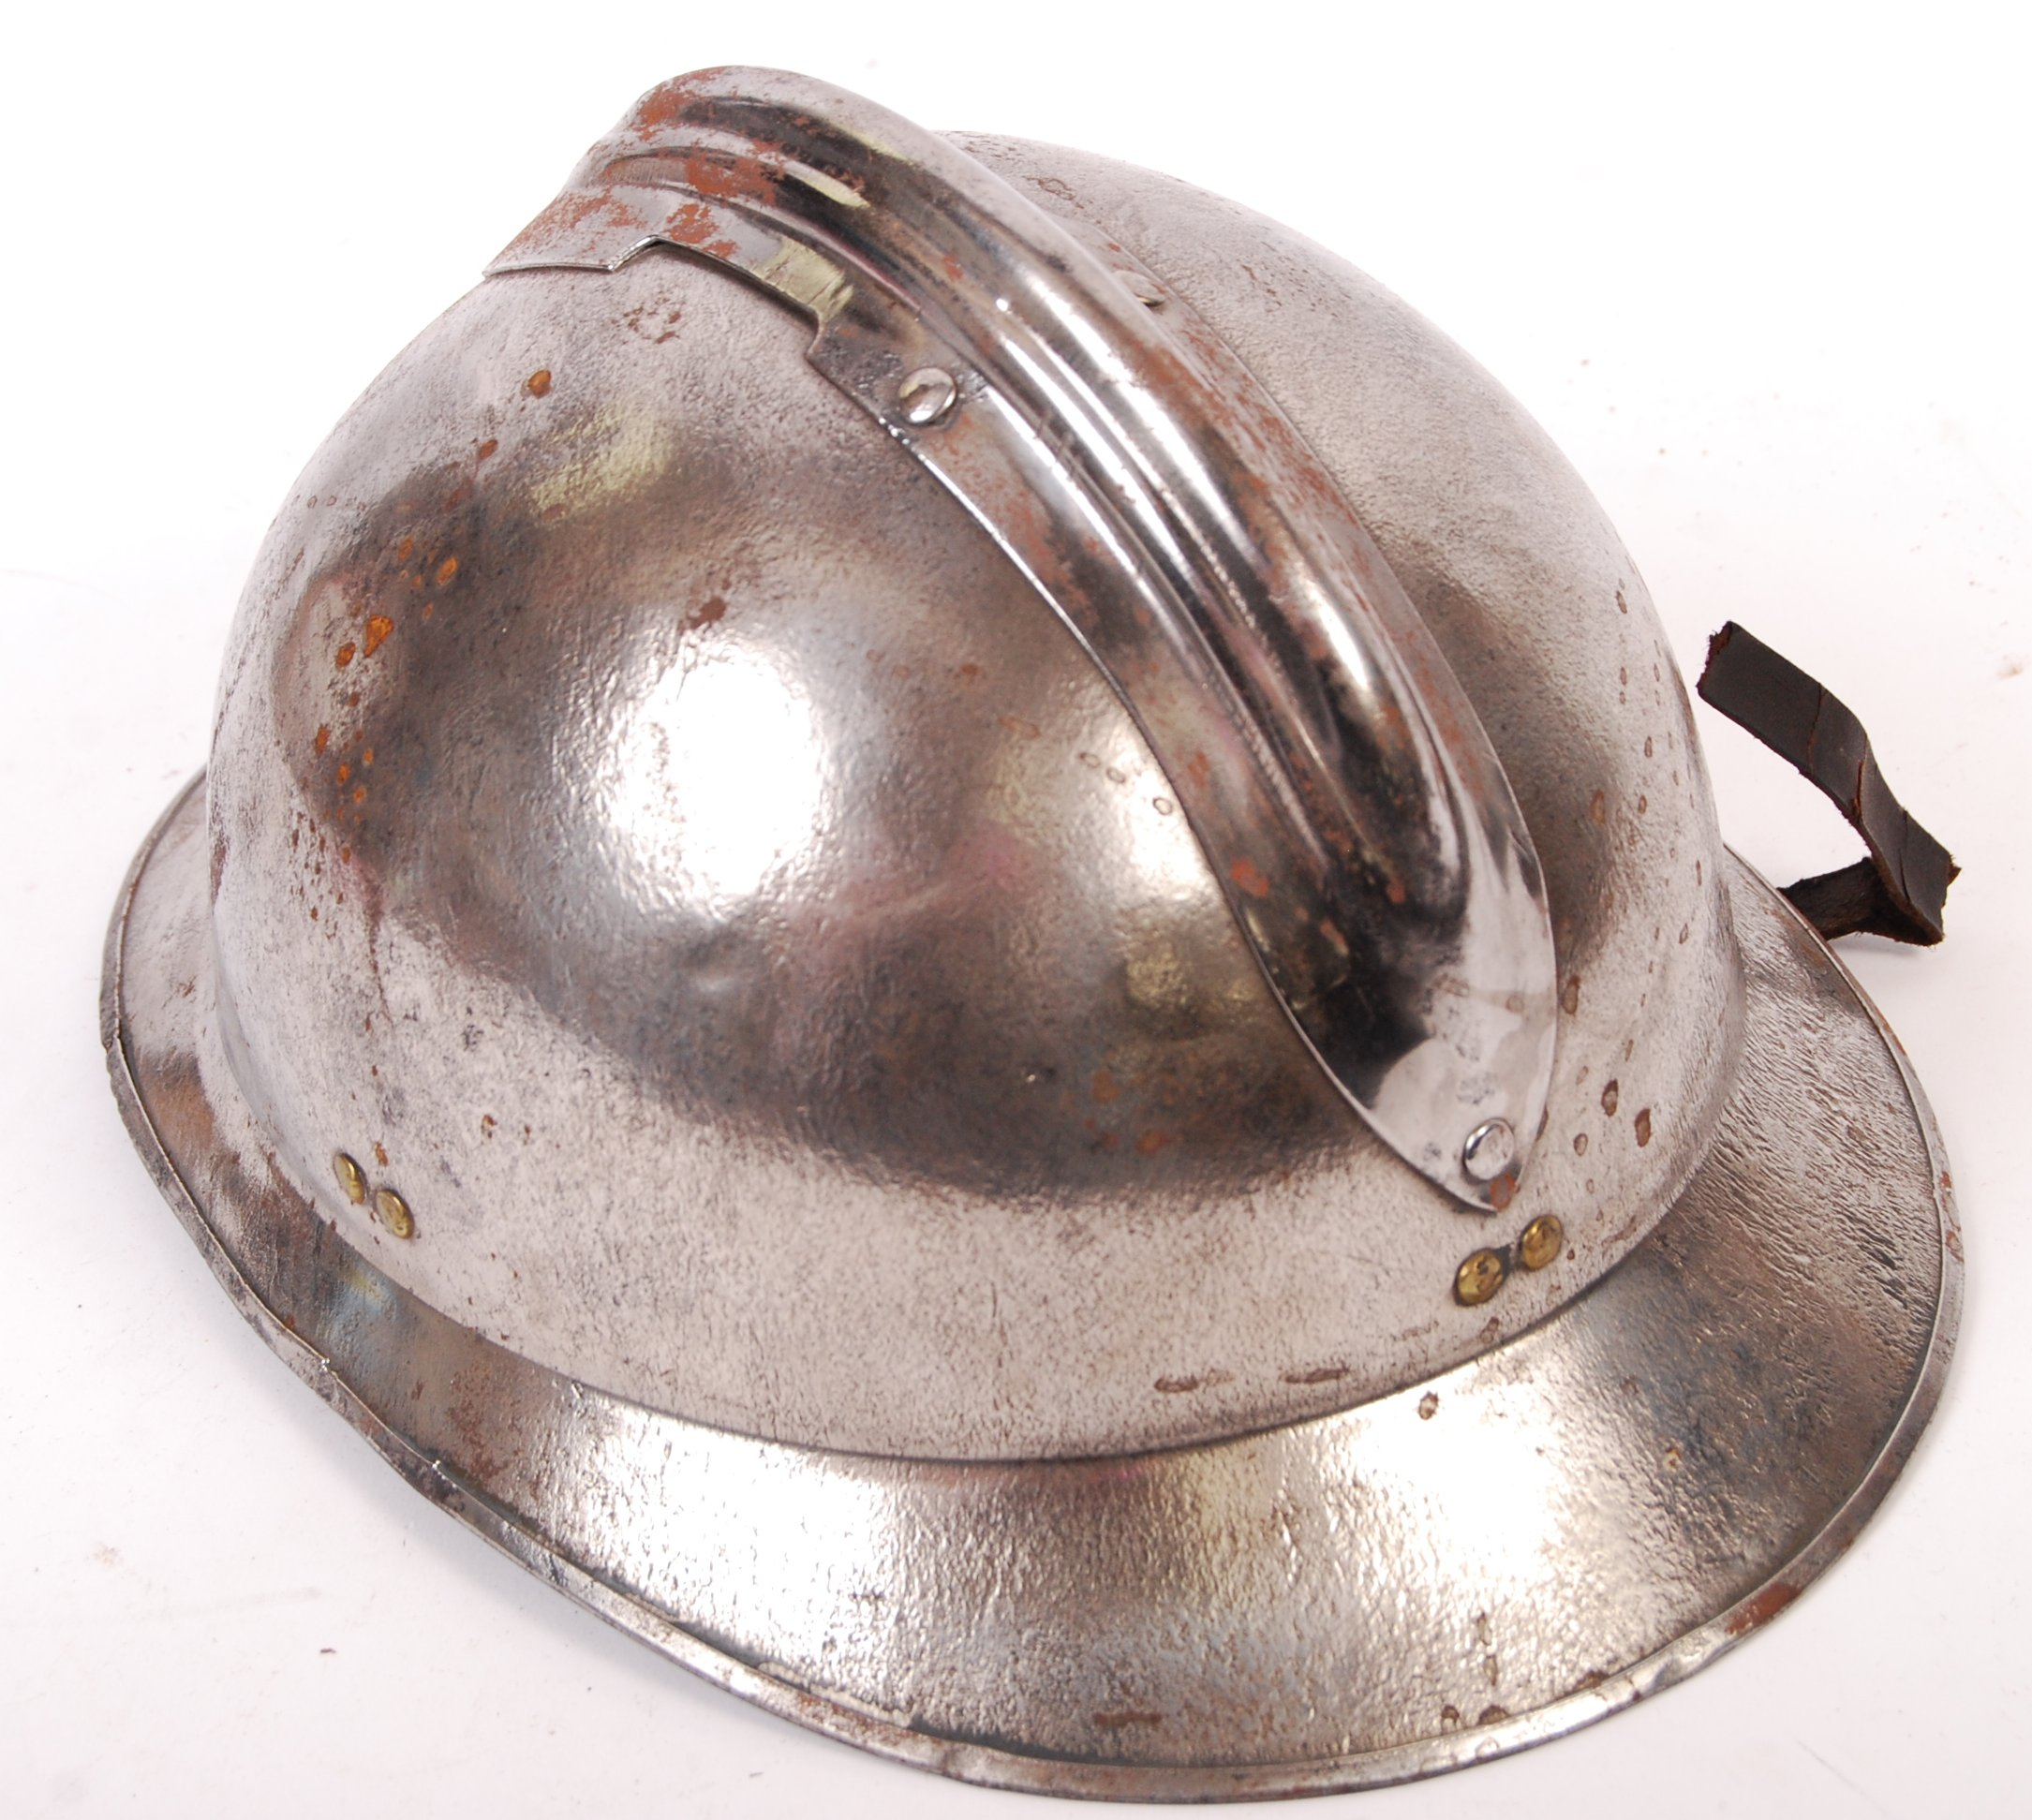 WWII SECOND WORLD WAR FRENCH M26 ADRIAN HELMET - Image 5 of 6